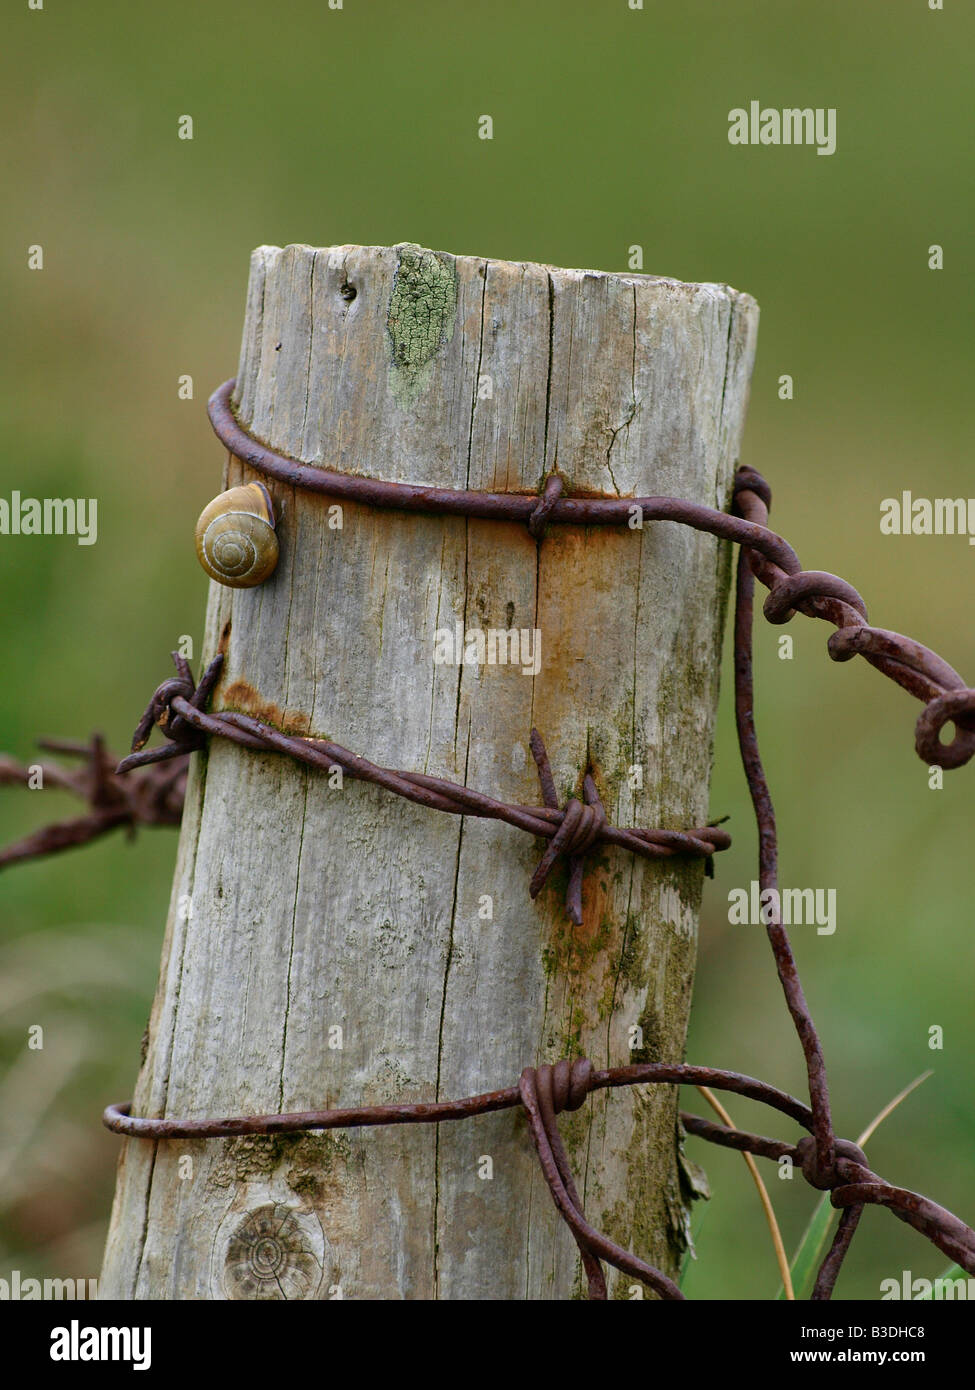 Old fence post with rusty barb wire and a snail Stock Photo ...